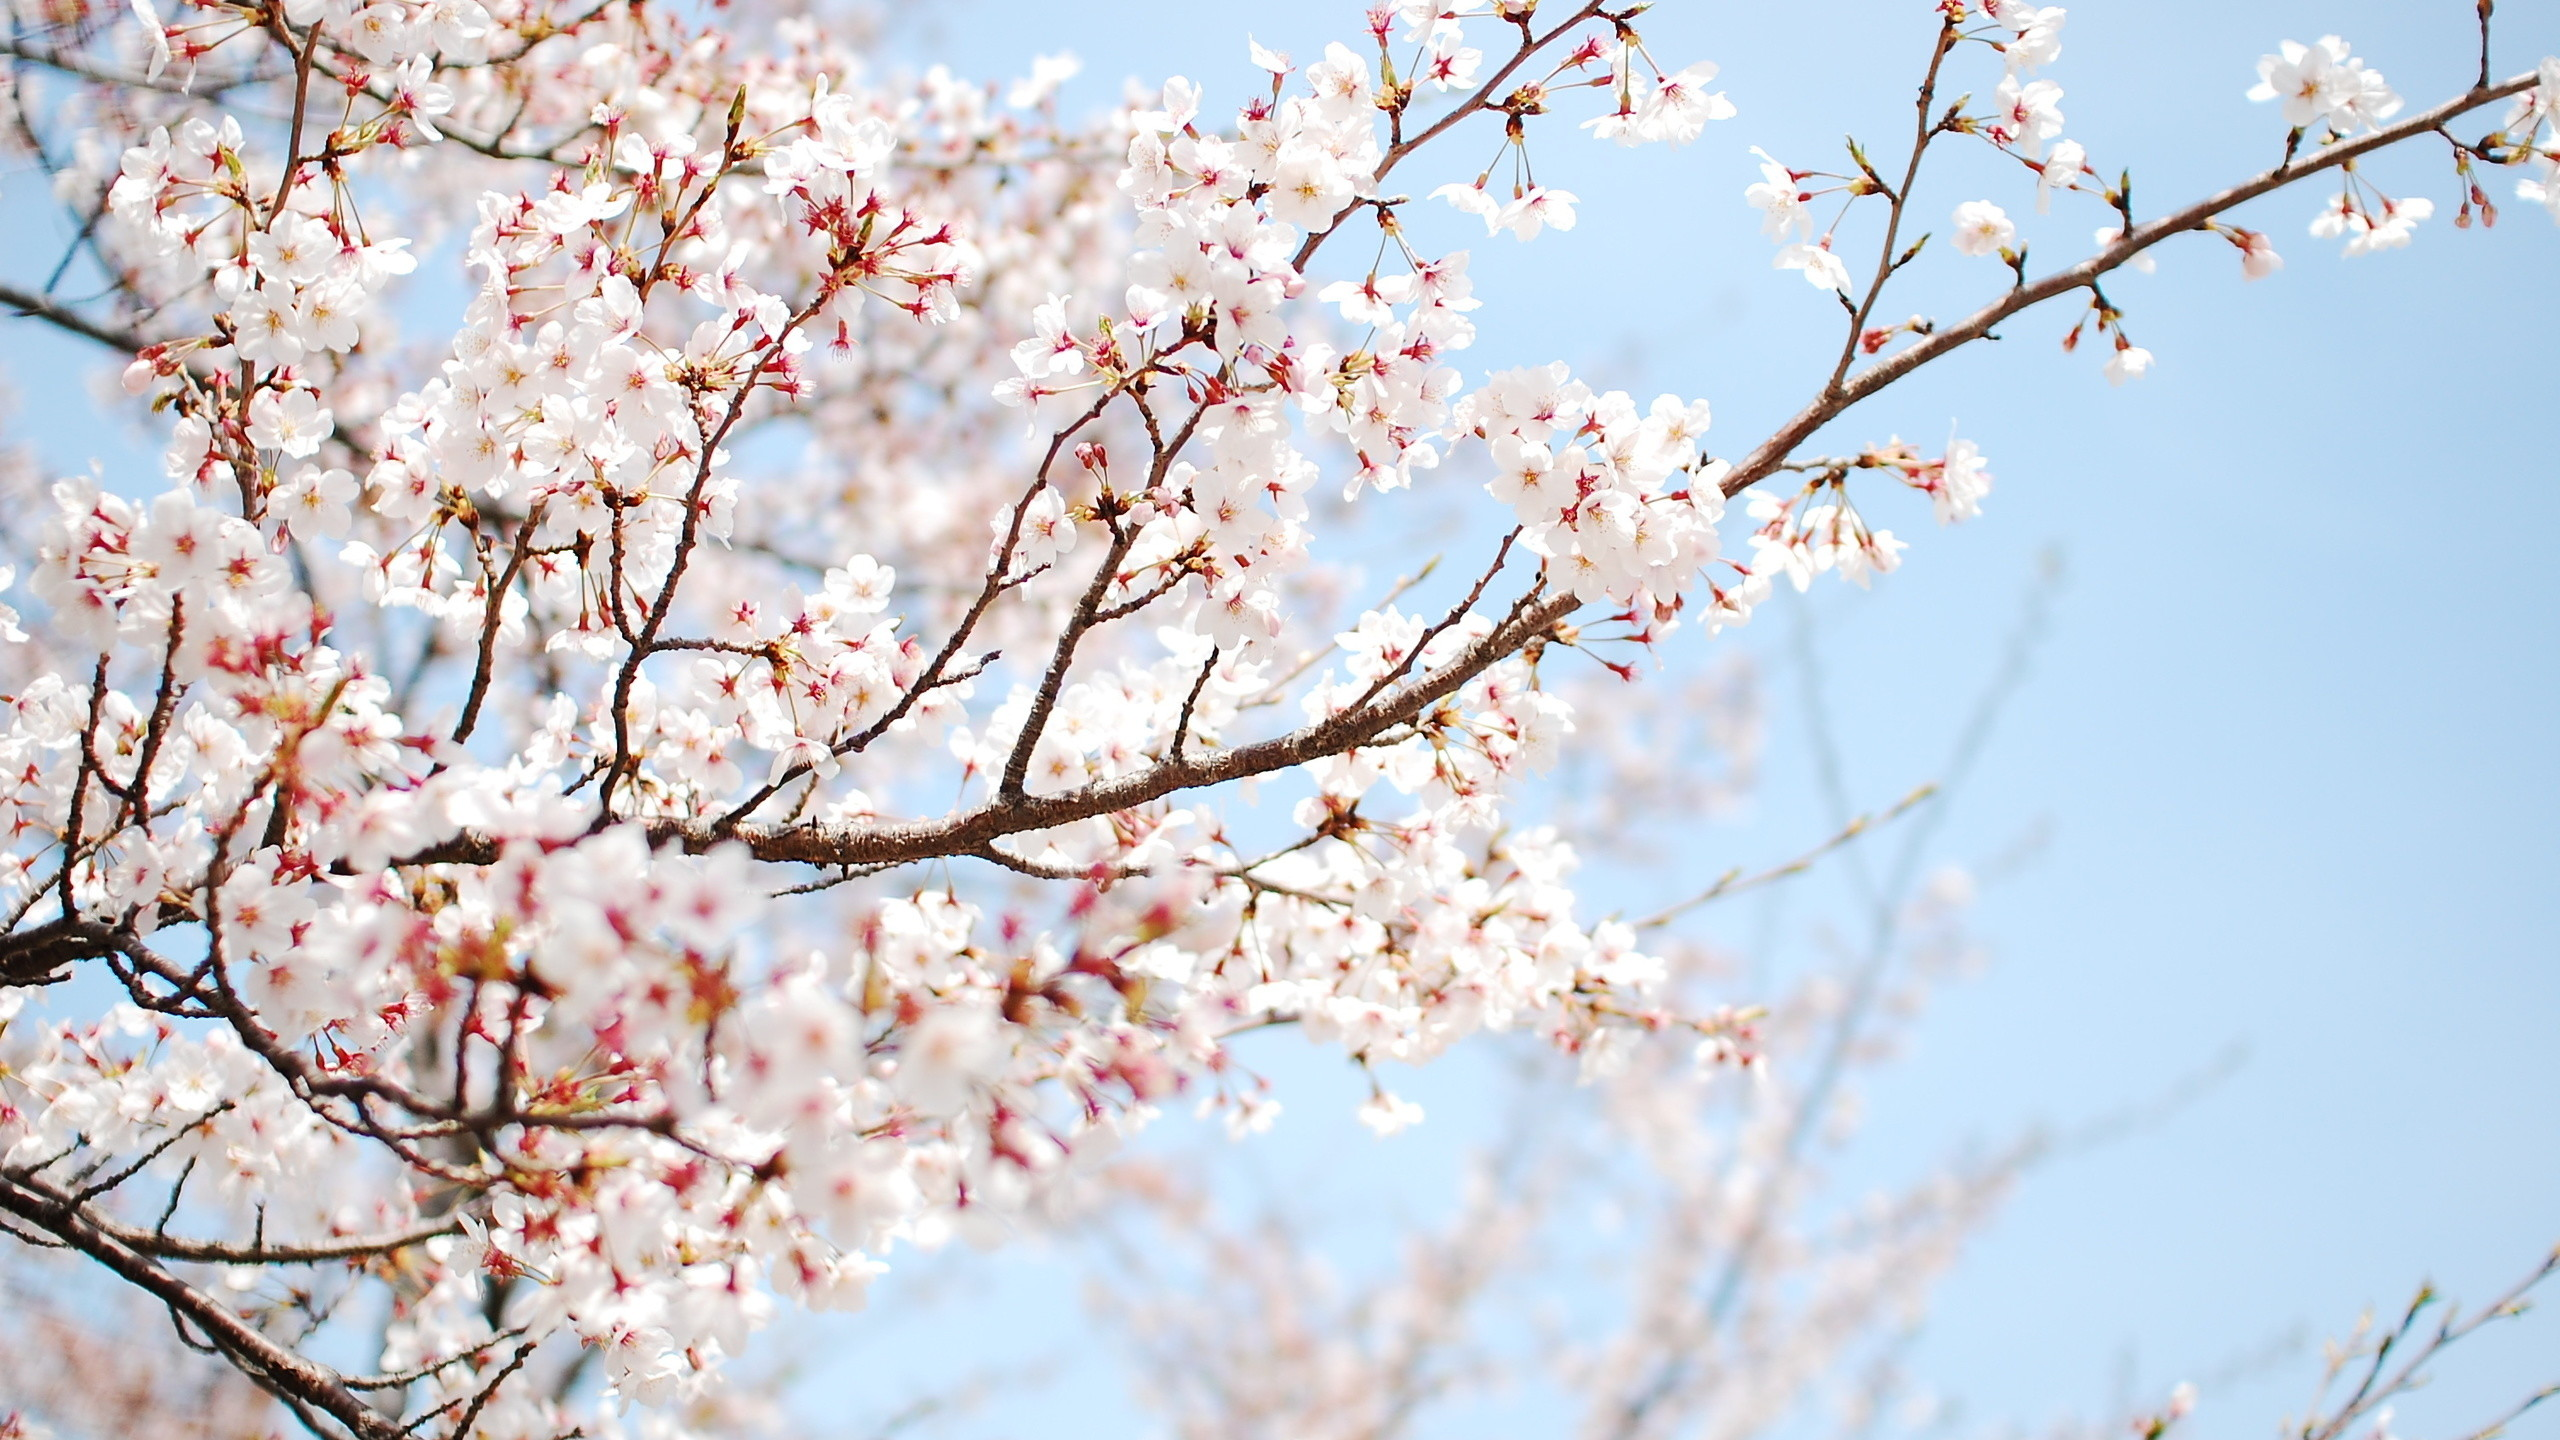 Cherry Blossom Wallpaper For Walls High Res Cherry Blossom Wallpapers  766026 Wall Home Remodel Ideas